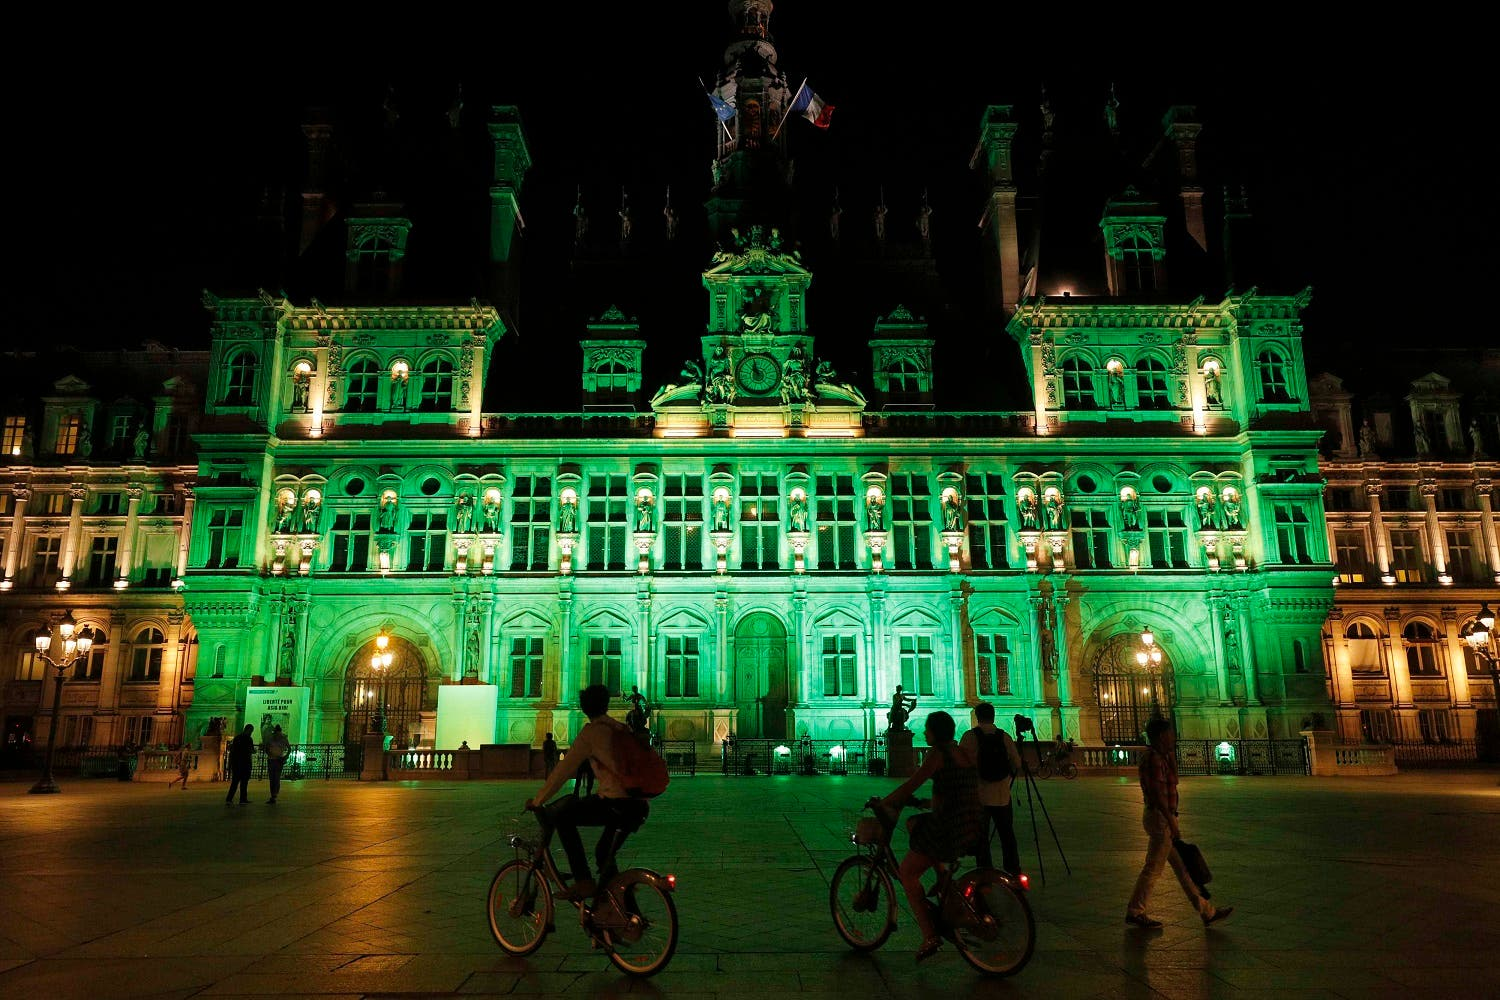 Green lights are projected onto the facade of the Hotel de Ville in Paris, France, after US President Donald Trump announced his decision to withdraw from the Paris Climate Agreement. (Reuters)